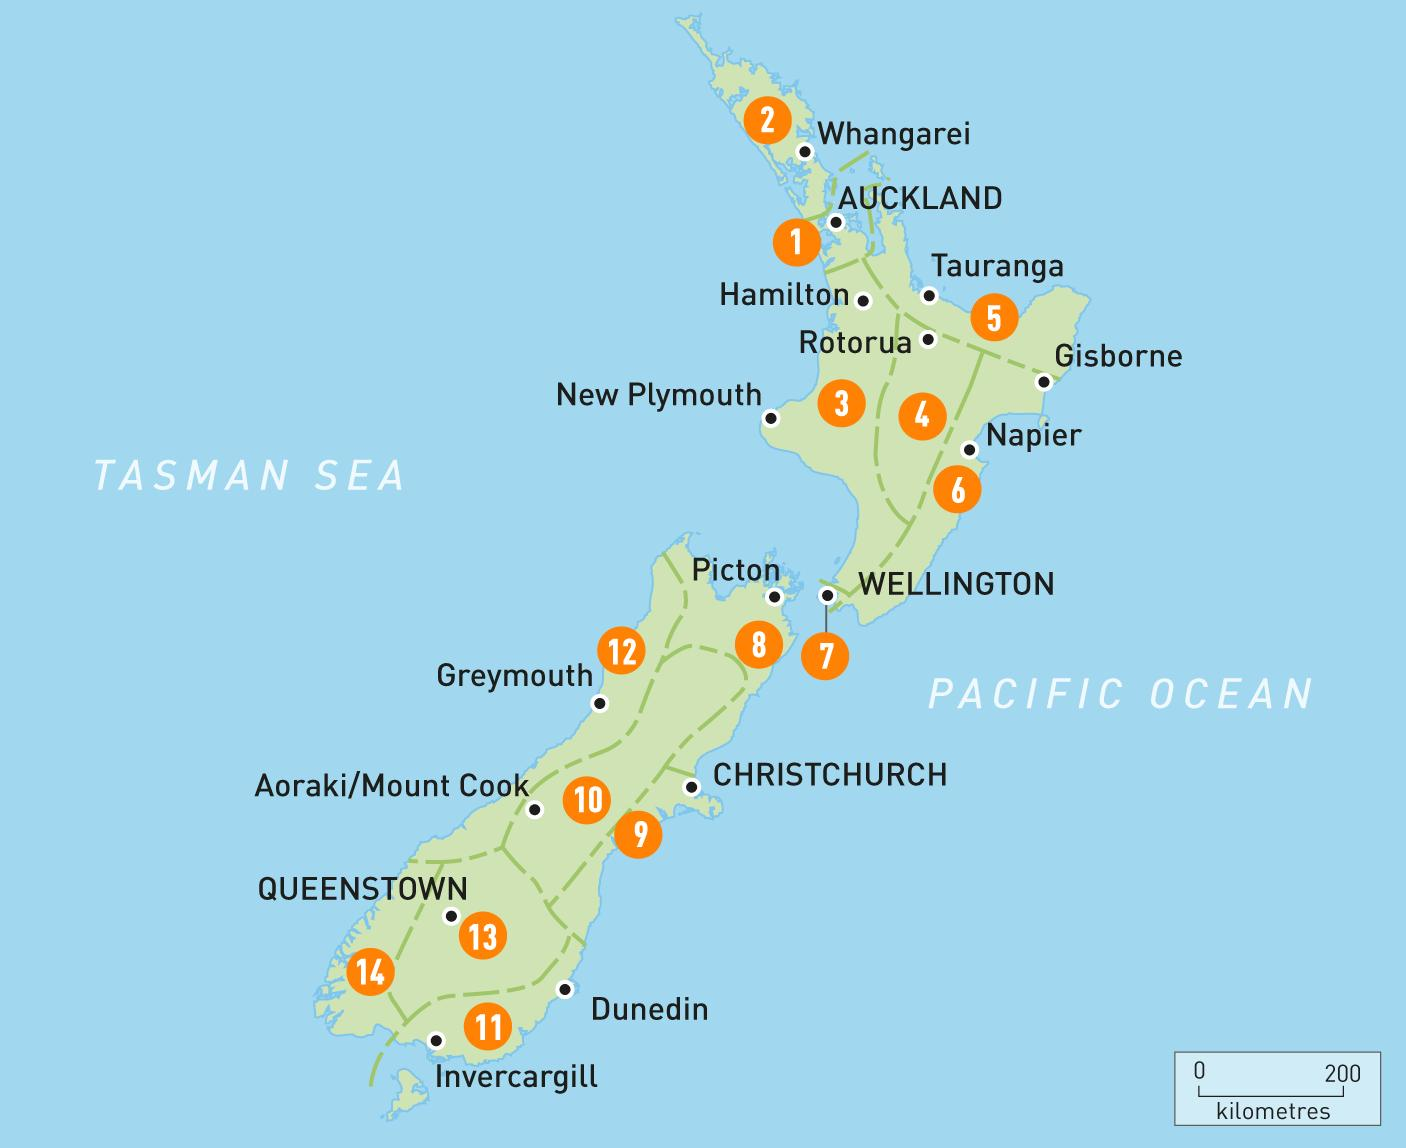 Map Of Auckland New Zealand.Auckland New Zealand Map Auckland In New Zealand Map Australia